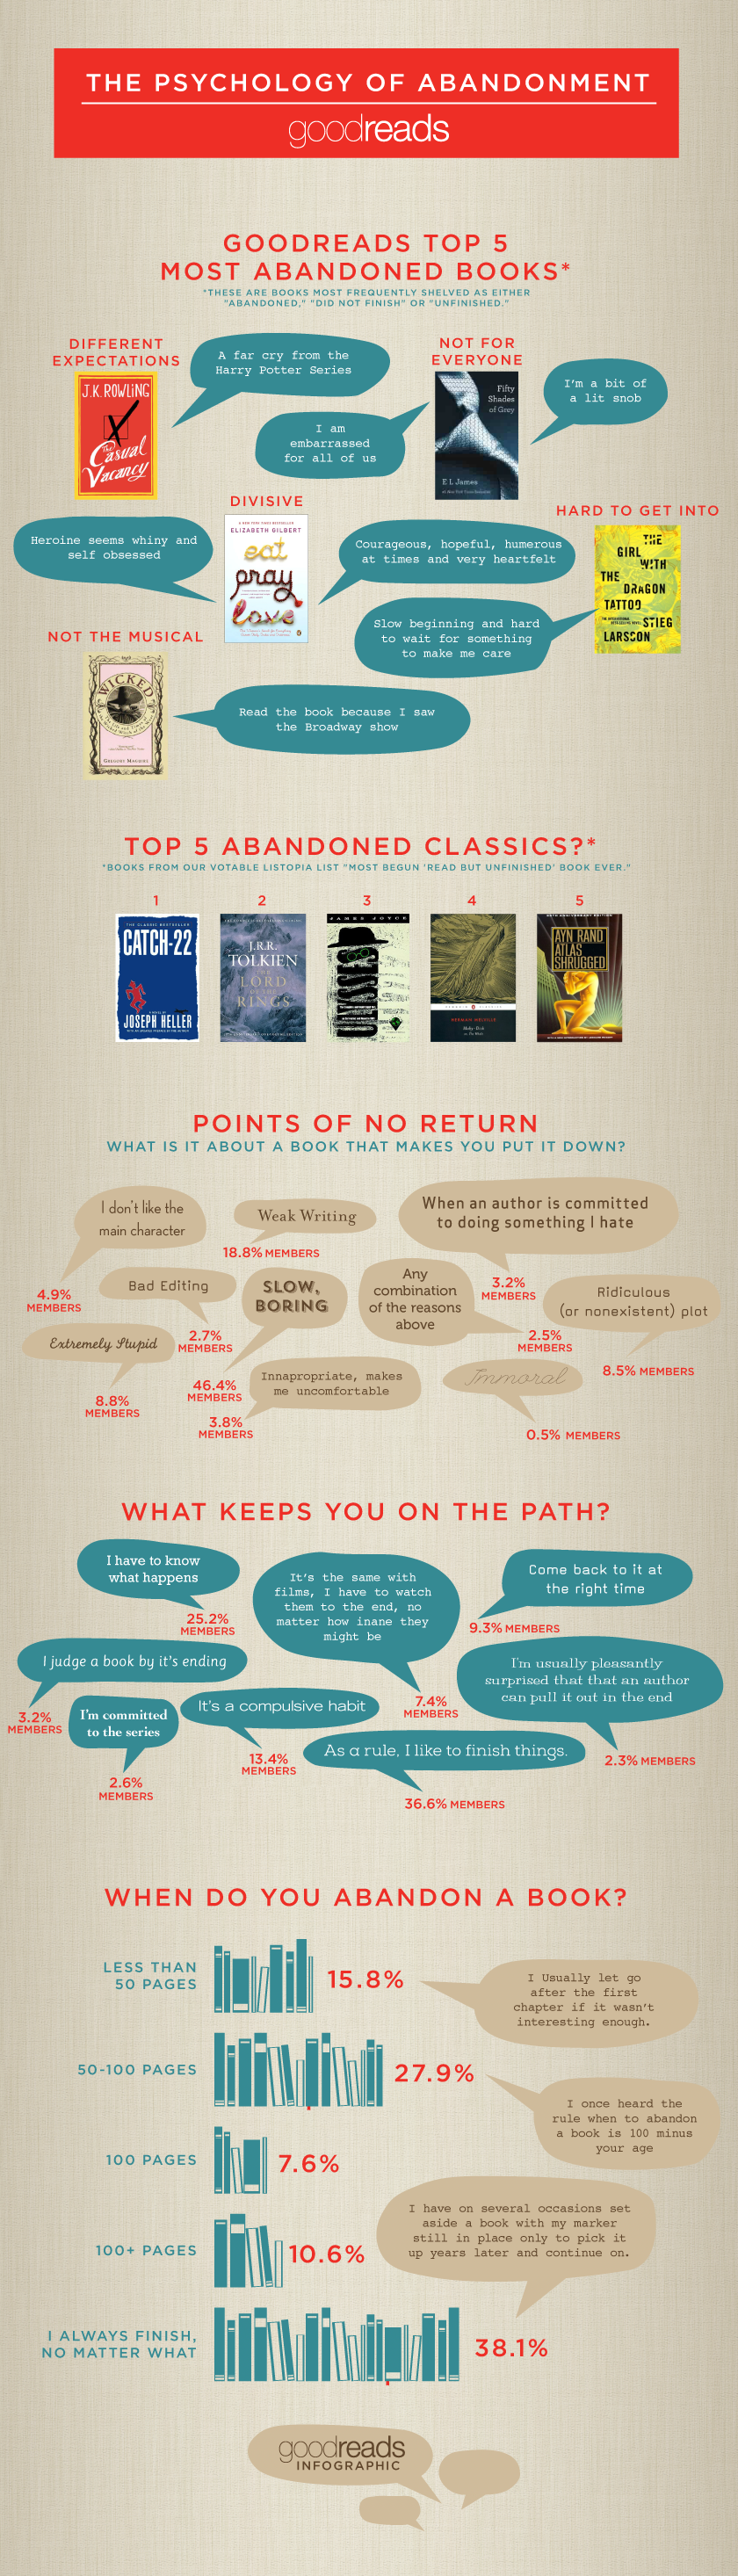 The Psychology of Abandonment Infographic for blog post What Makes You Put Down a Book? -